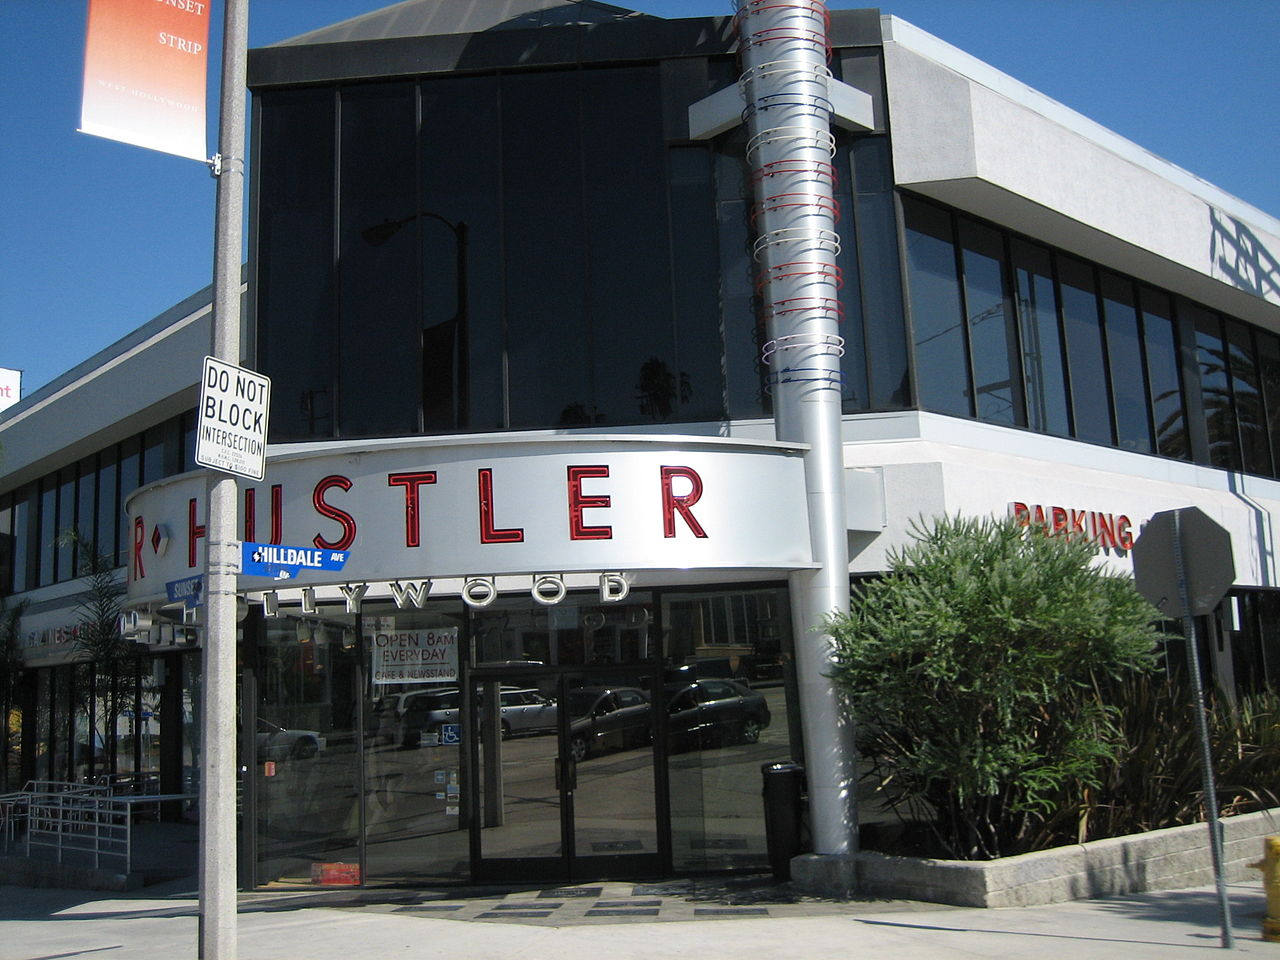 hustler hollywood gift store